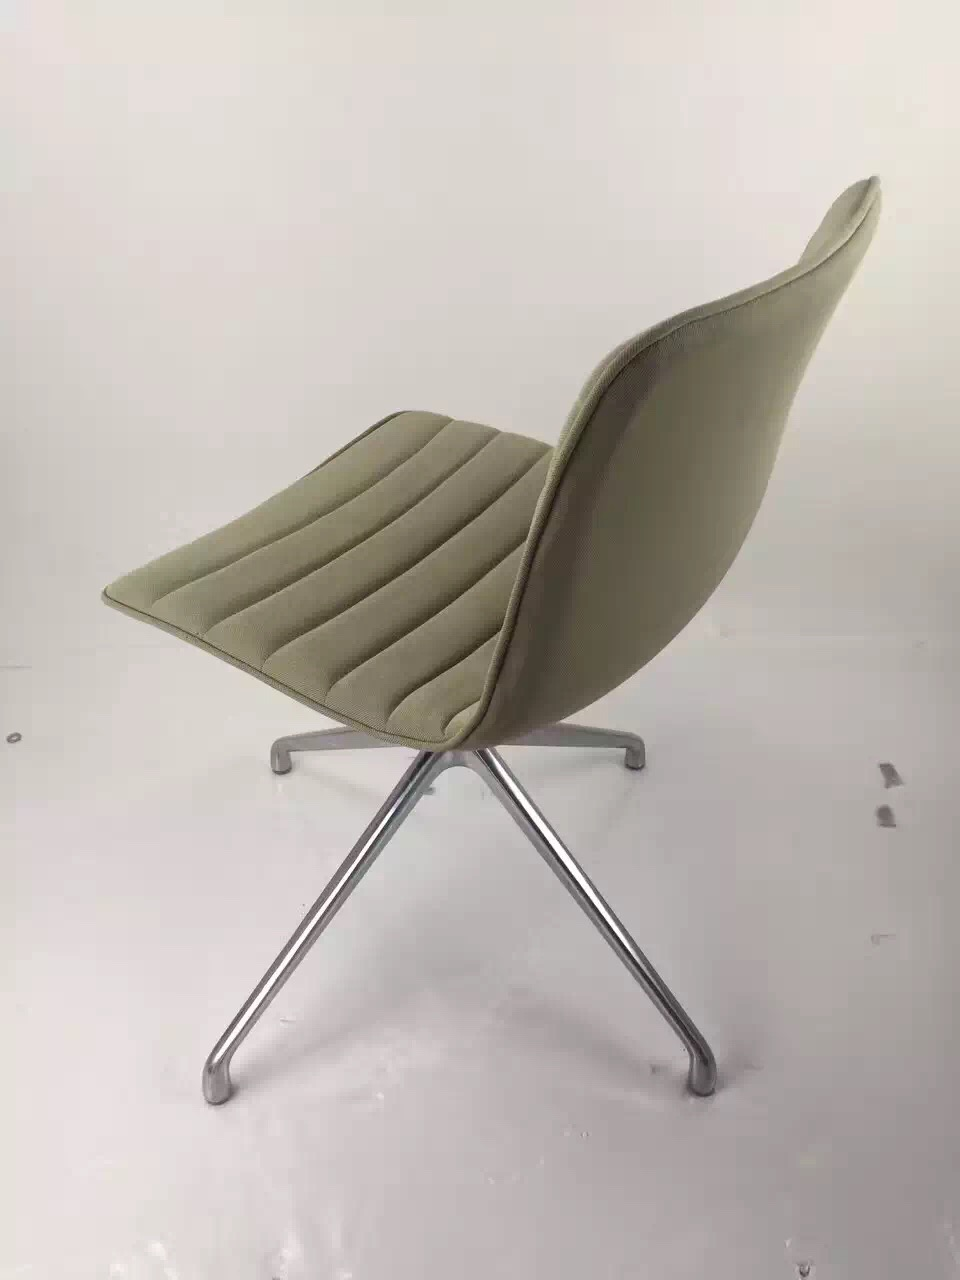 Hot Sale Elegant Beige Leather Office Chair,meeting chair,reception office chair without castor